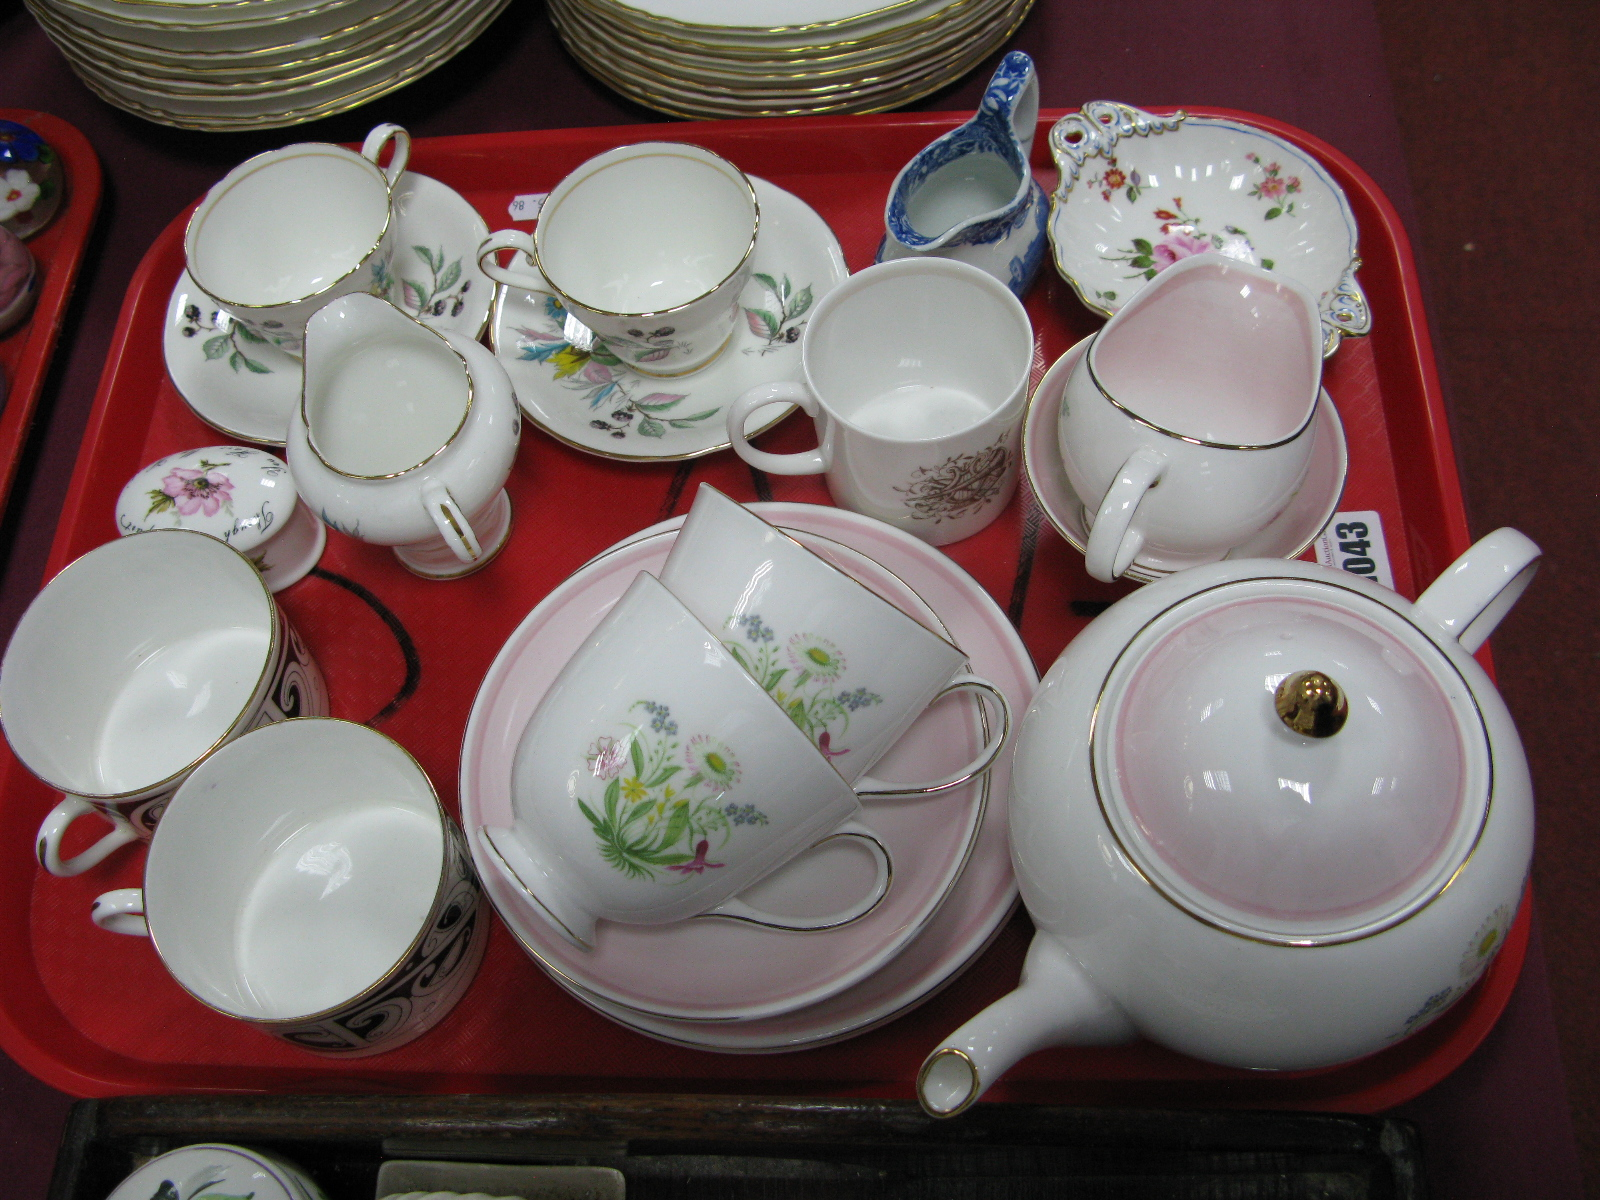 Lot 1043 - A Susie Cooper 'Romance' Pink Tea for Two, Crown Derby pin tray, Doulton Maori Art cups etc:- One